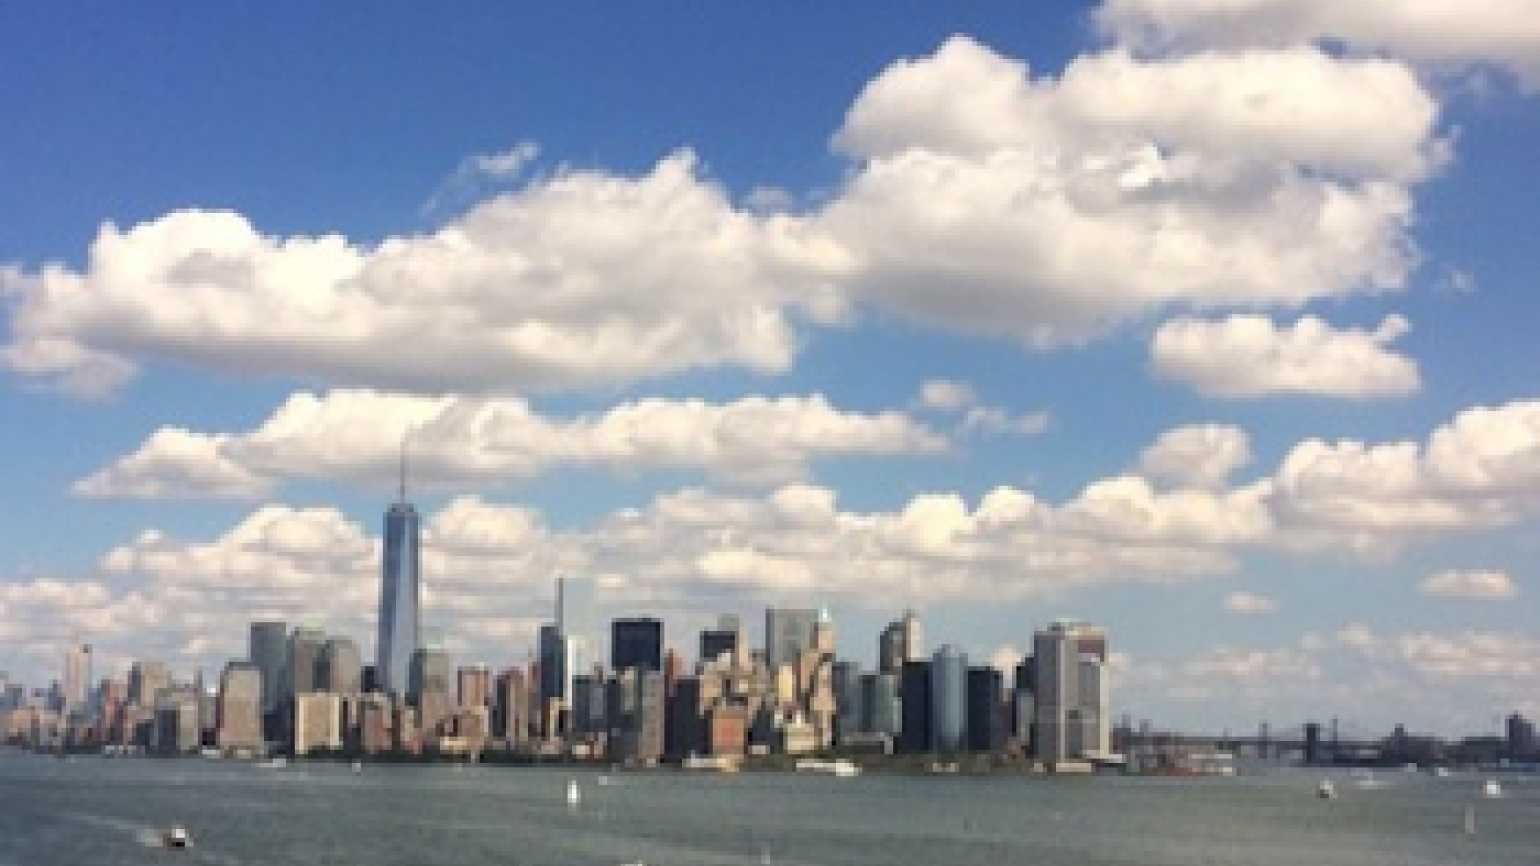 The New York City skyline featuring the Freedom Tower